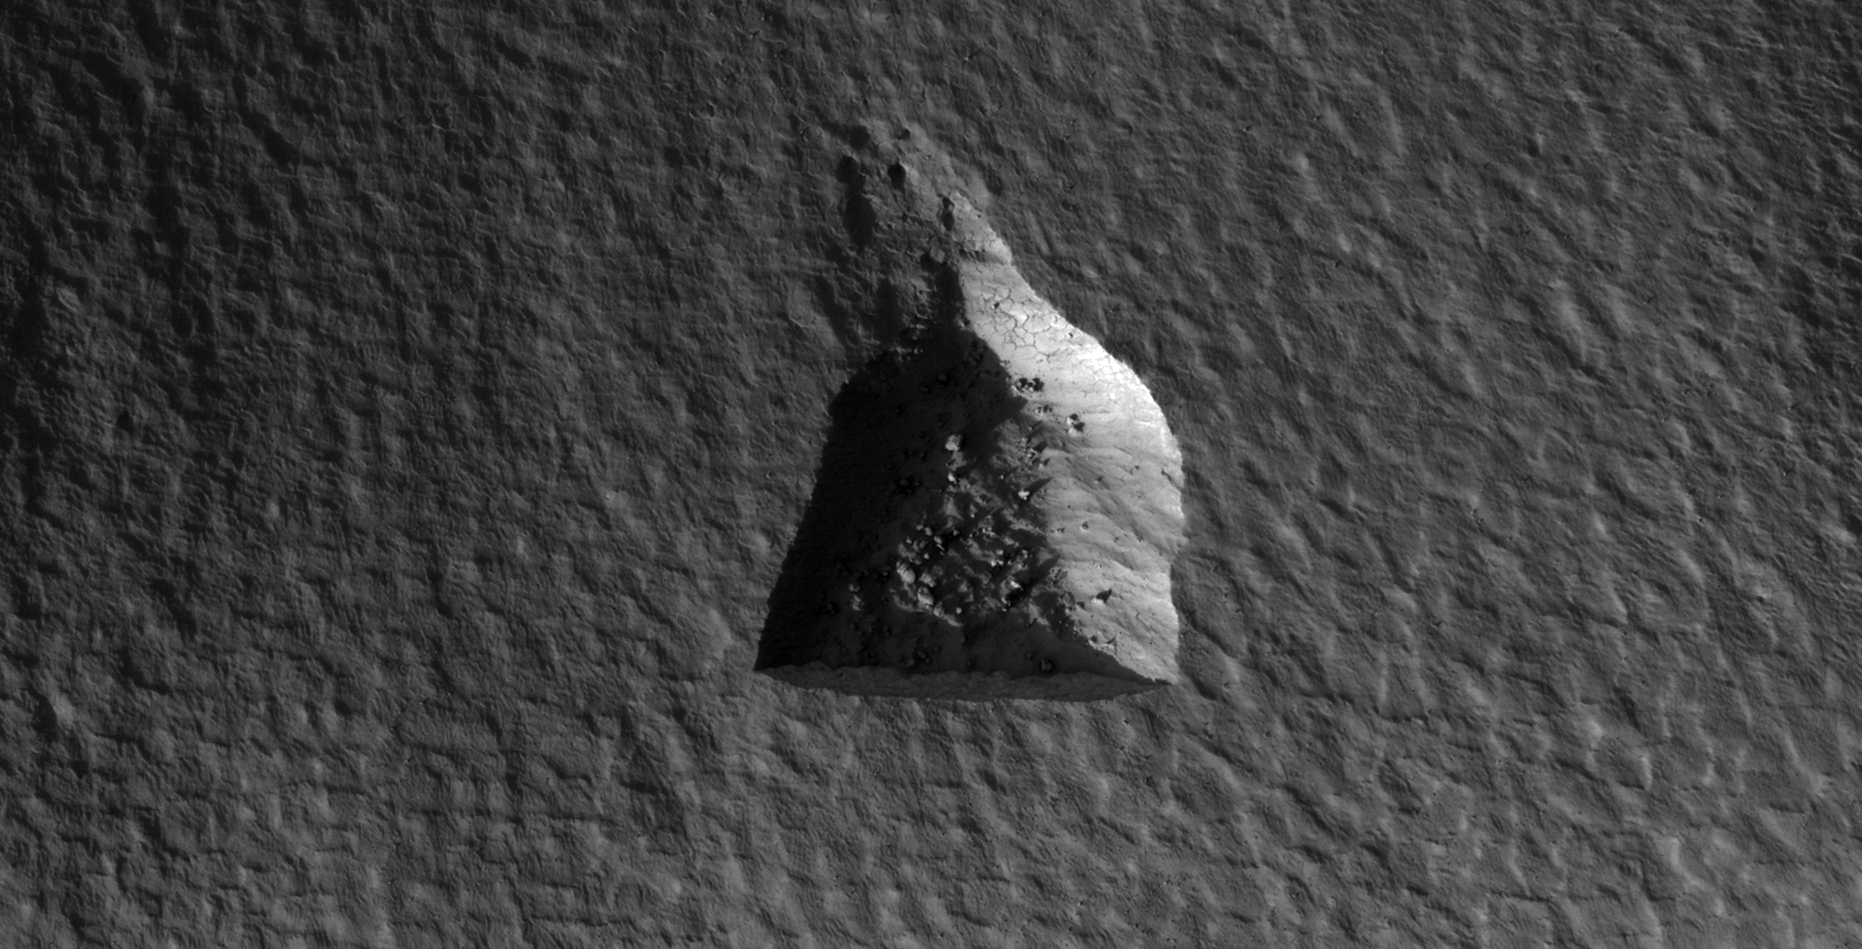 Mine or Strange Geometric Shape Carved Into Martian Surface (ESP_020286_2350)